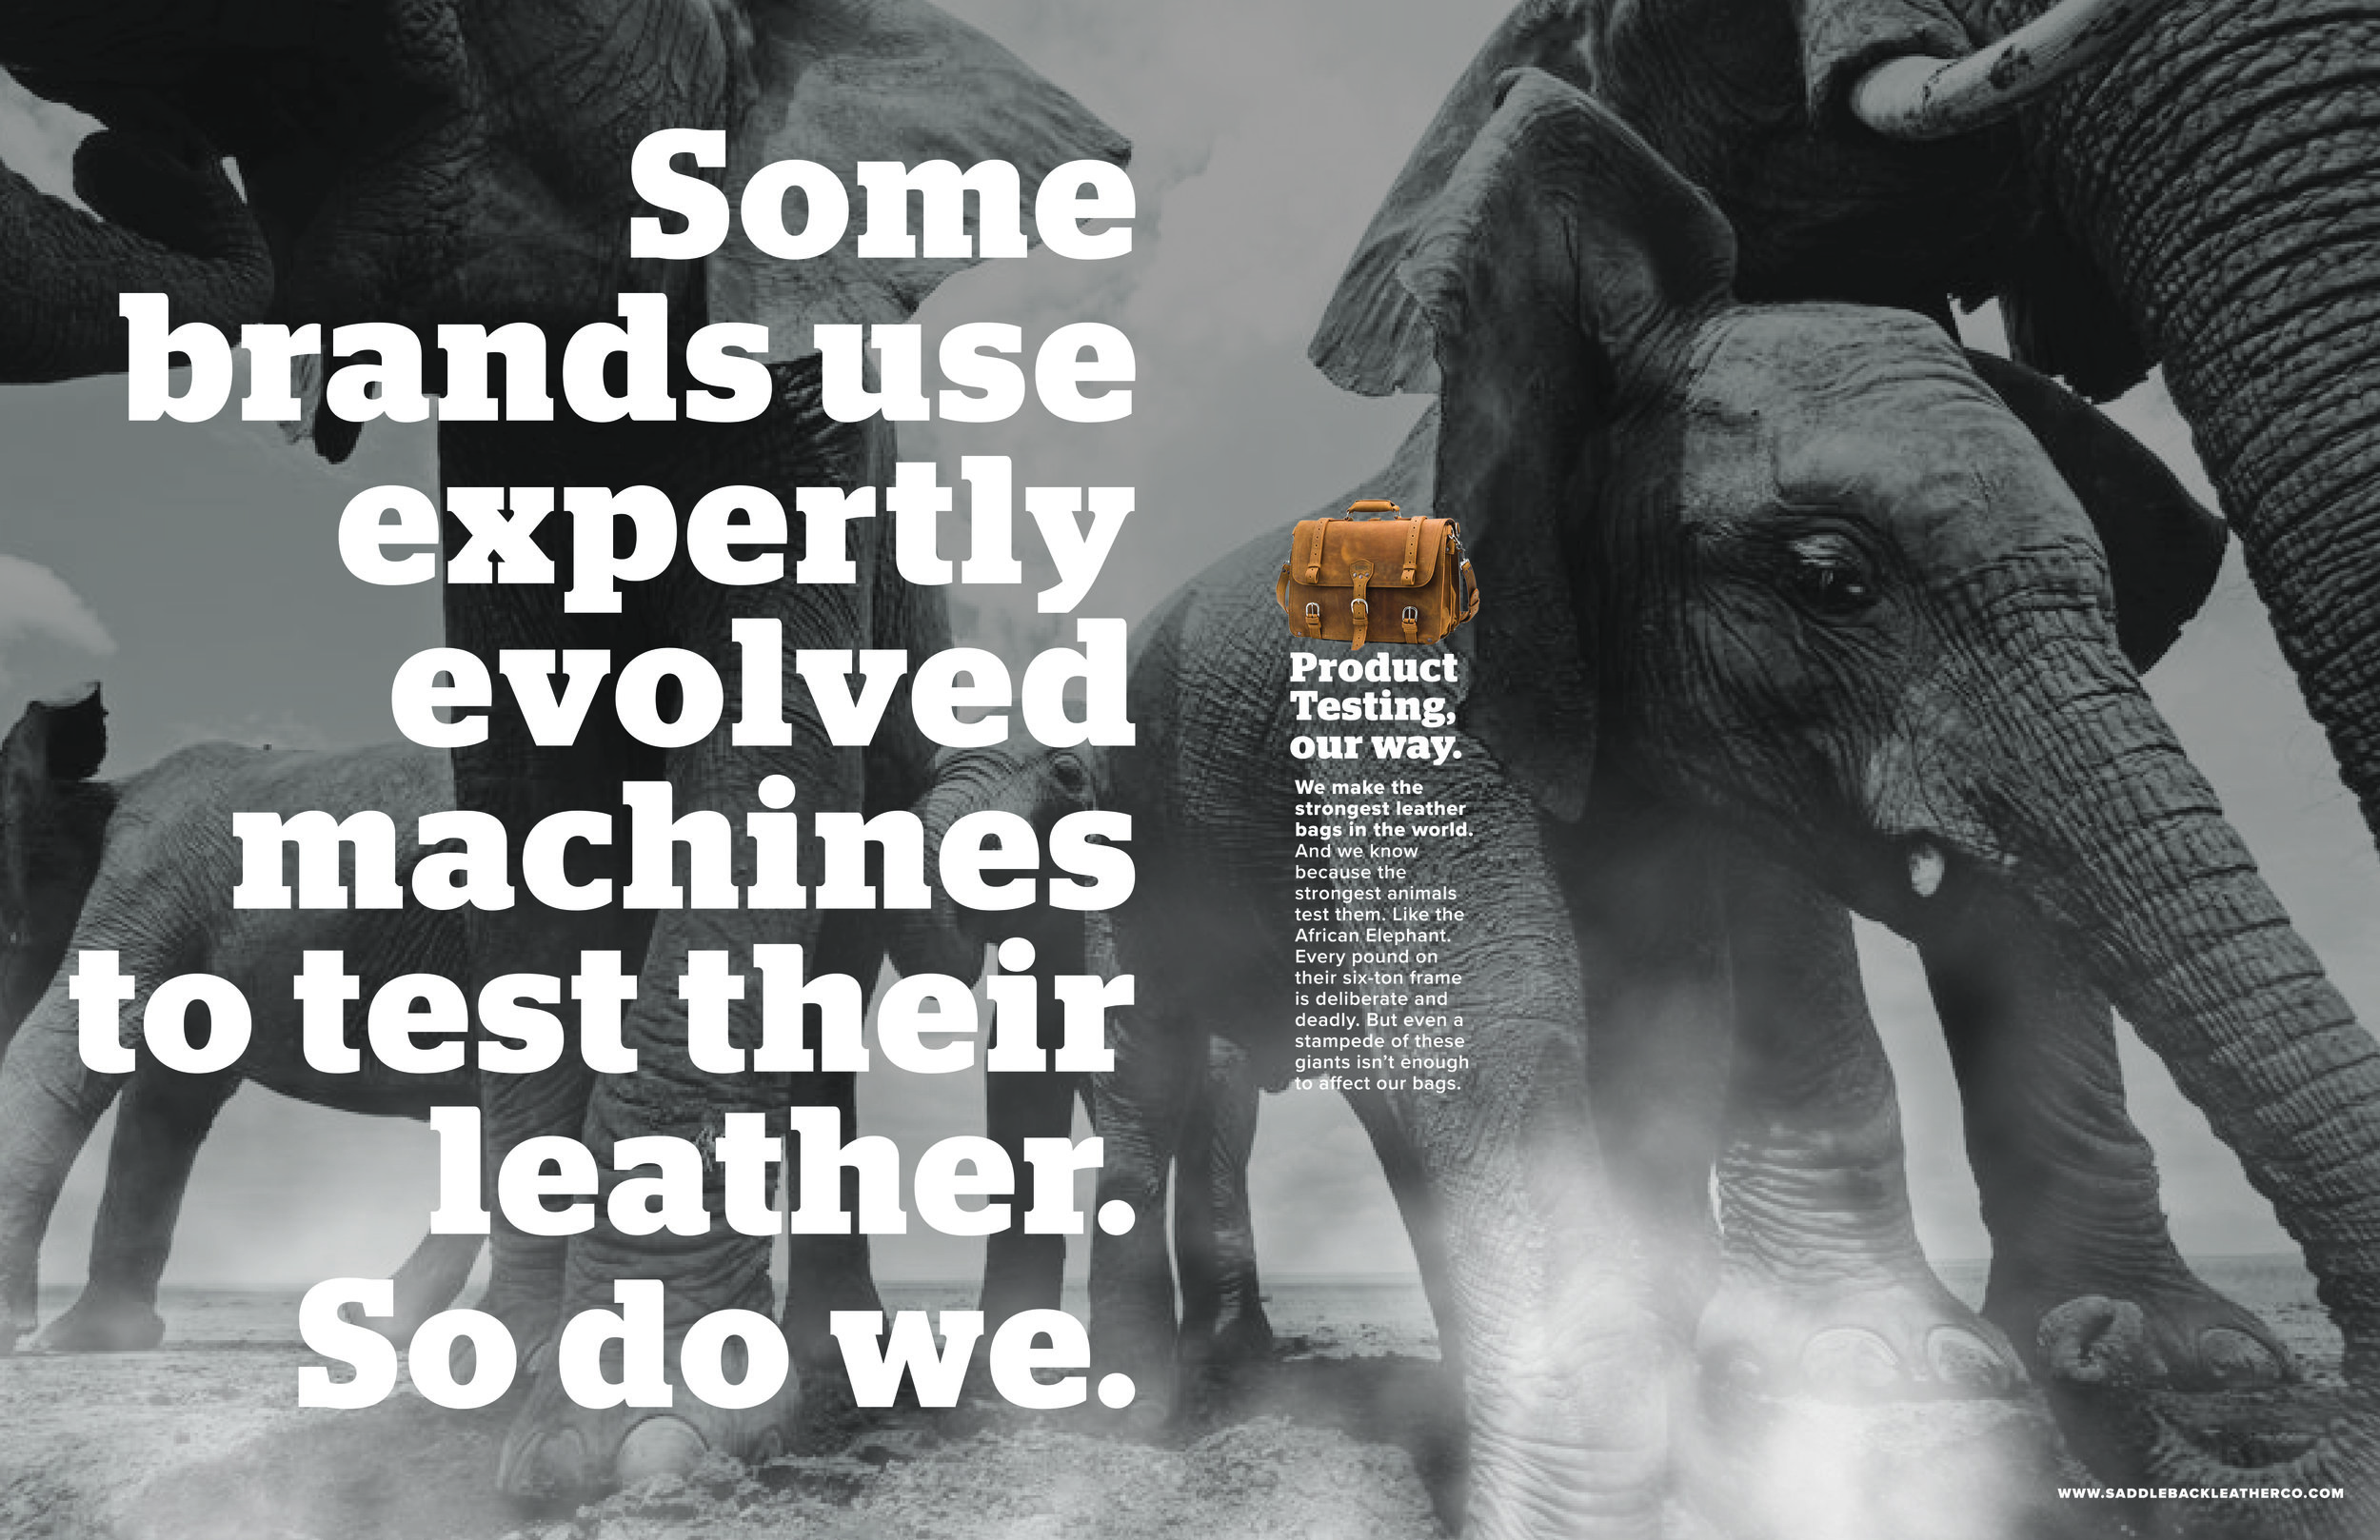 Body Copy:  We make the strongest leather bags in the world. And we know because the strongest animals test them. Like the African Elephant. Every pound on their six-ton frame is deliberate and deadly. But even a stampede of these giants isn't enough to affect our bags.